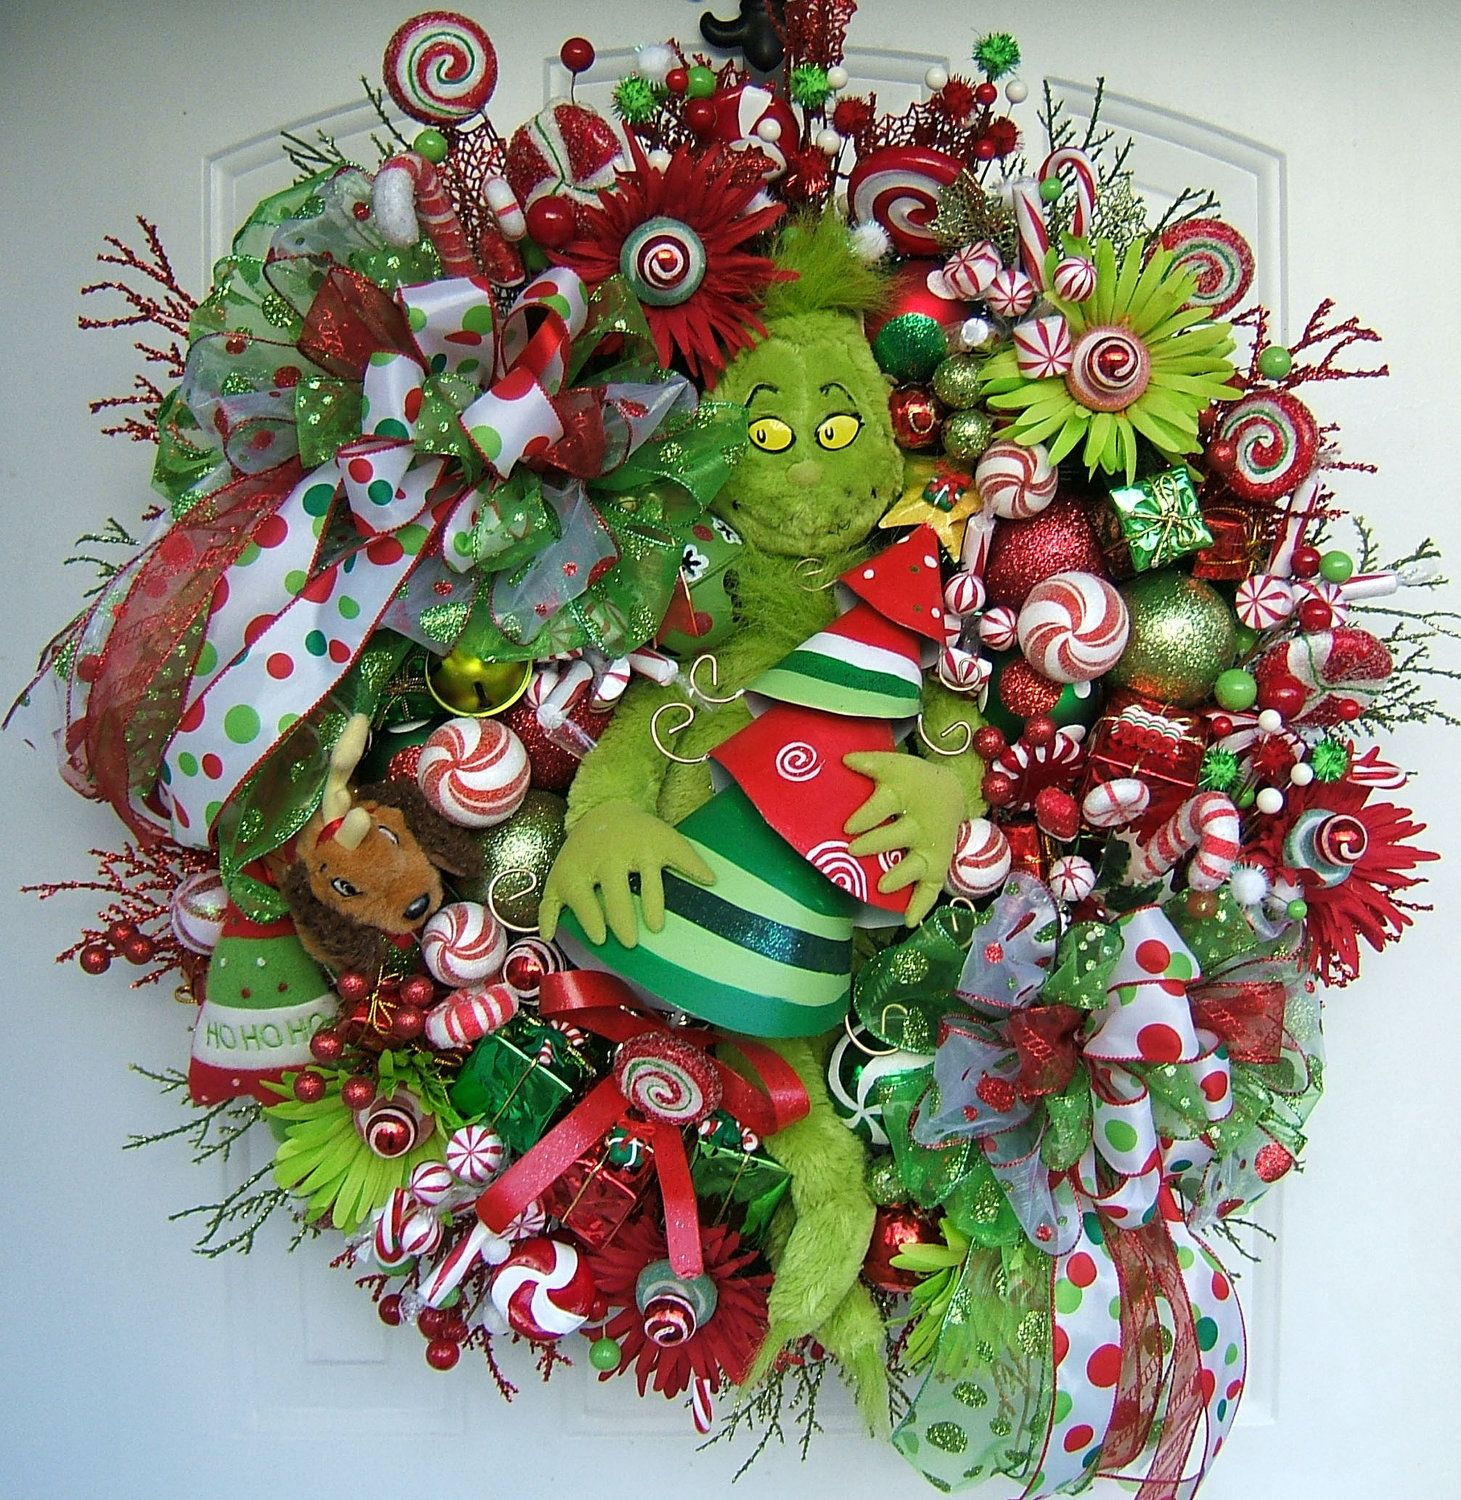 Grinch Christmas Wreath, Grinch Stole Christmas, Grinch And Max, Holiday